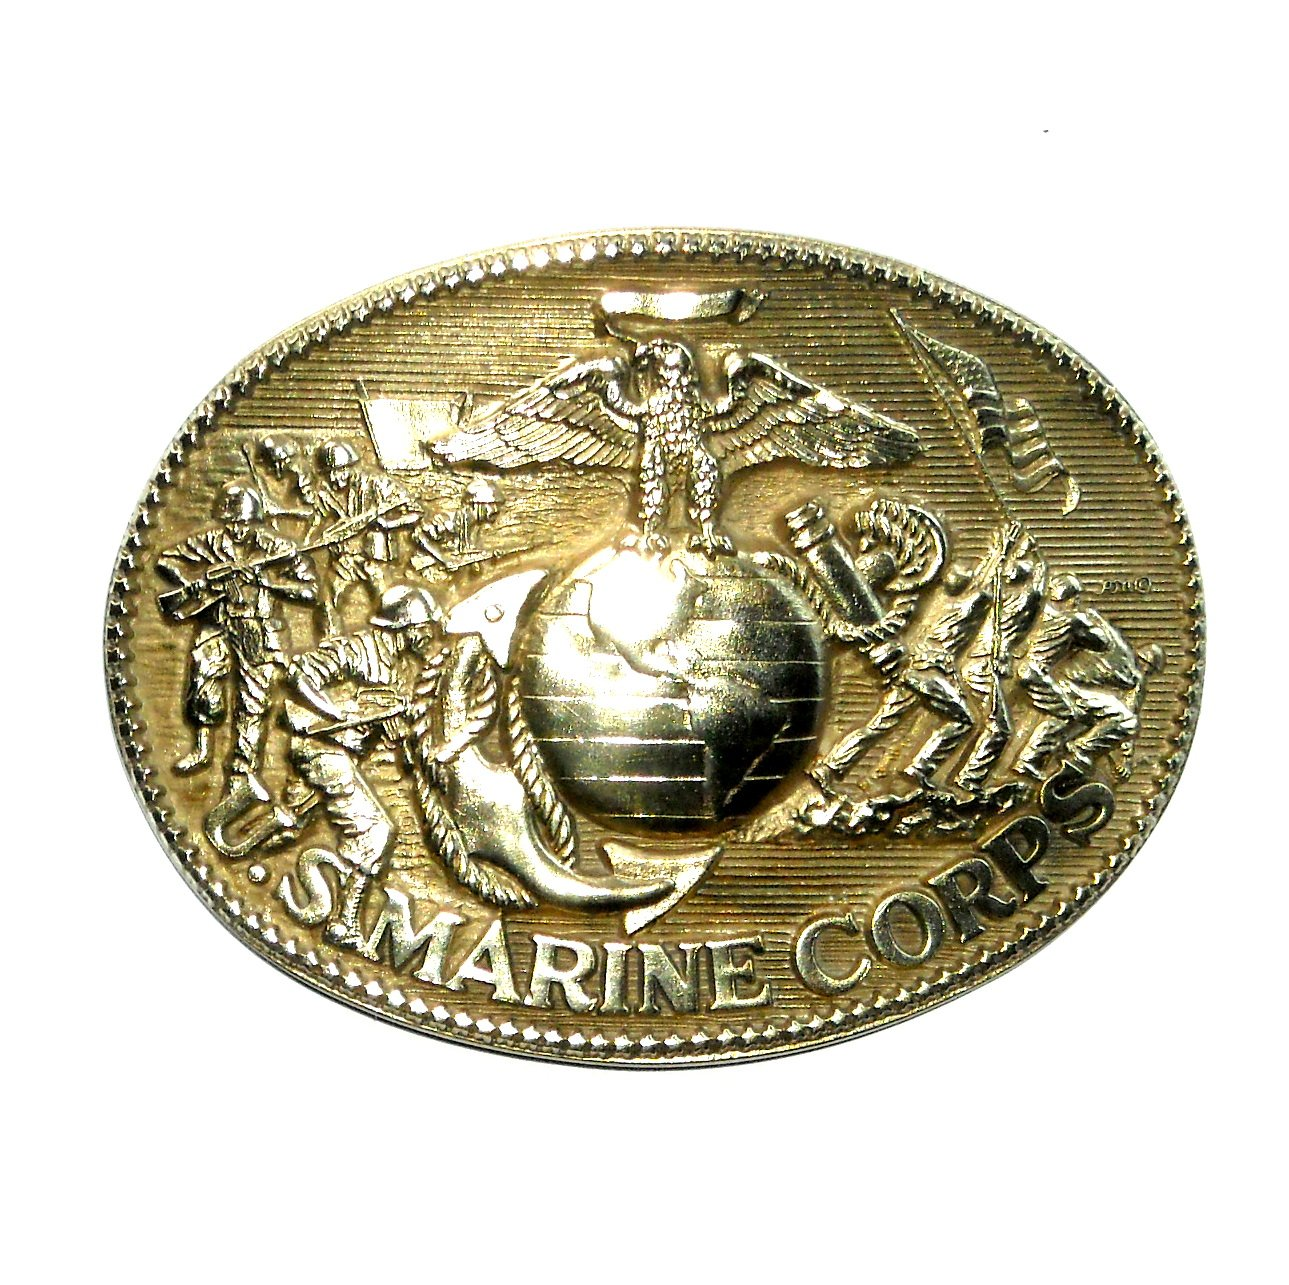 US Marine Corps ADM Vintage Solid Brass Belt Buckle